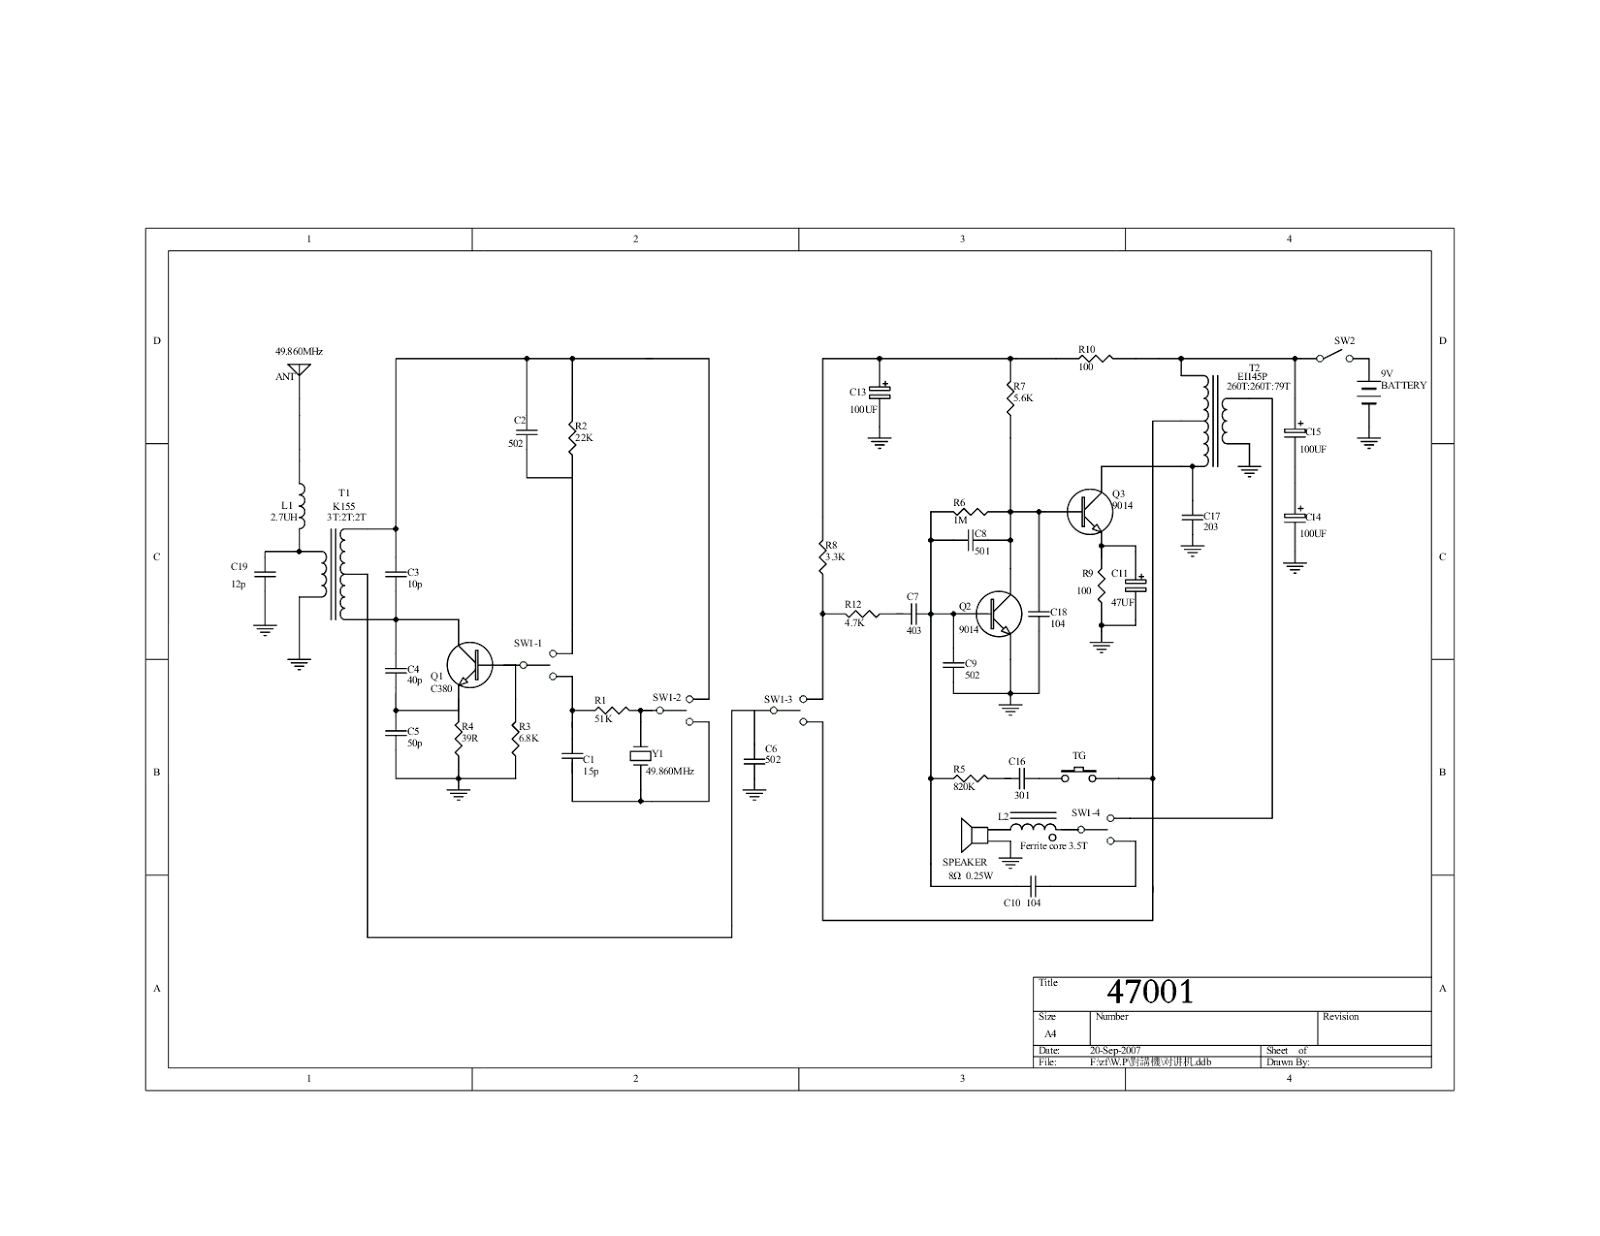 walkie talkie circuit diagram explanation